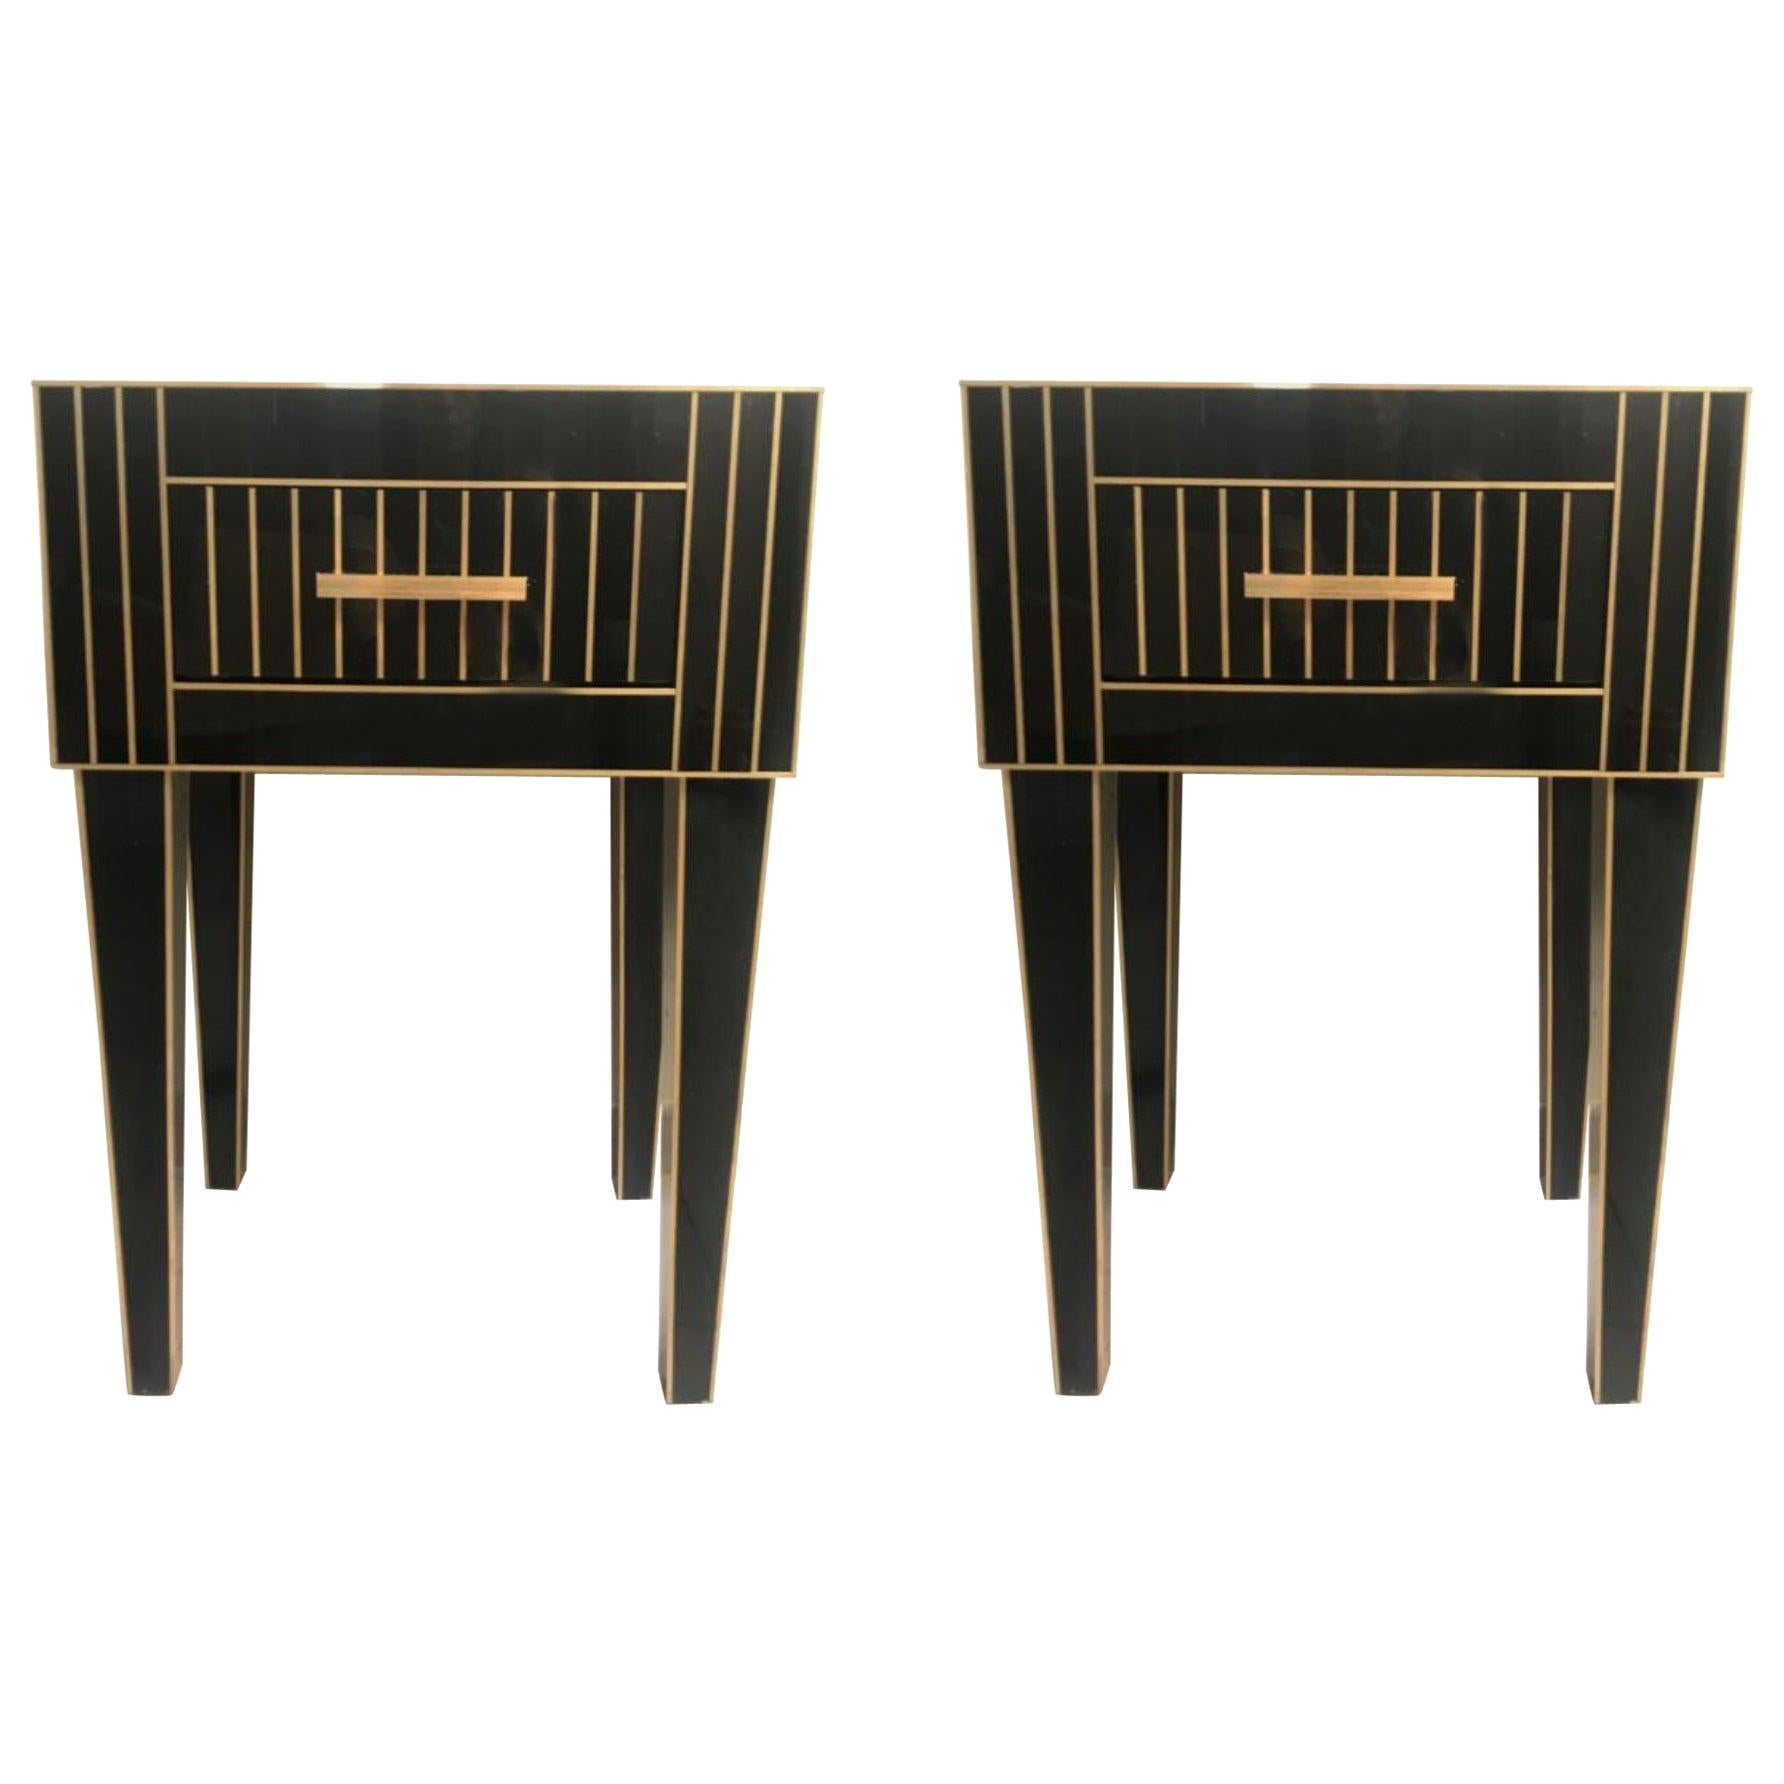 New Mirrored Nightstand in Black Mirror and Chrome, Price Per 1 Item